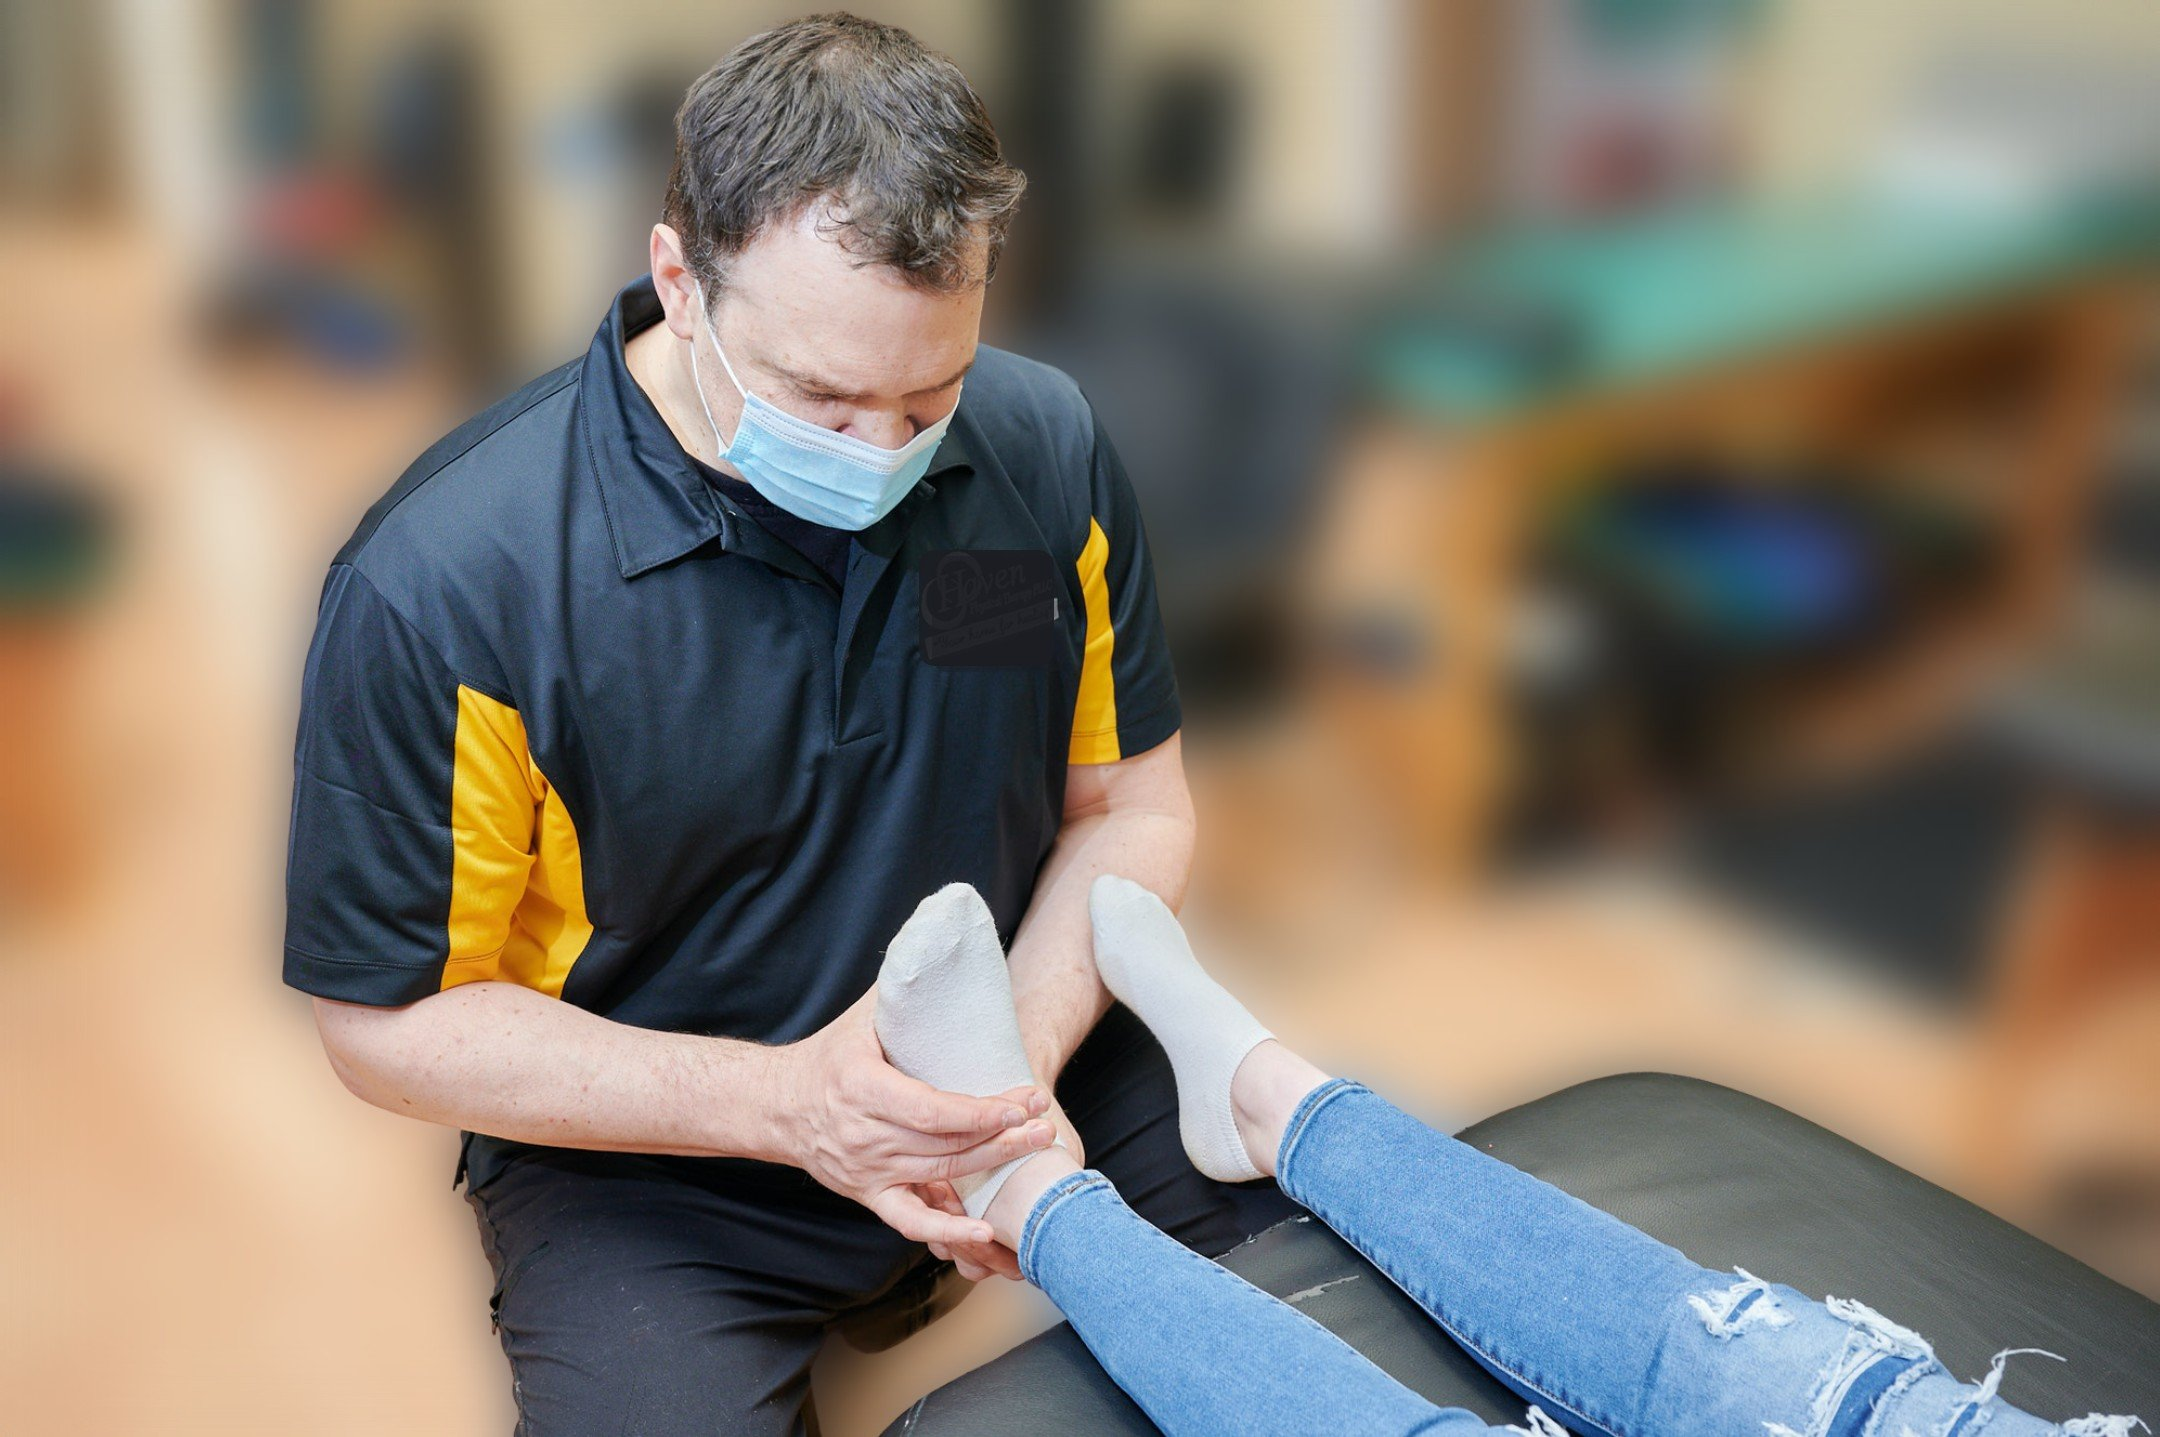 Pediatric Physical Therapy- Fit Physical Therapy - White Plains